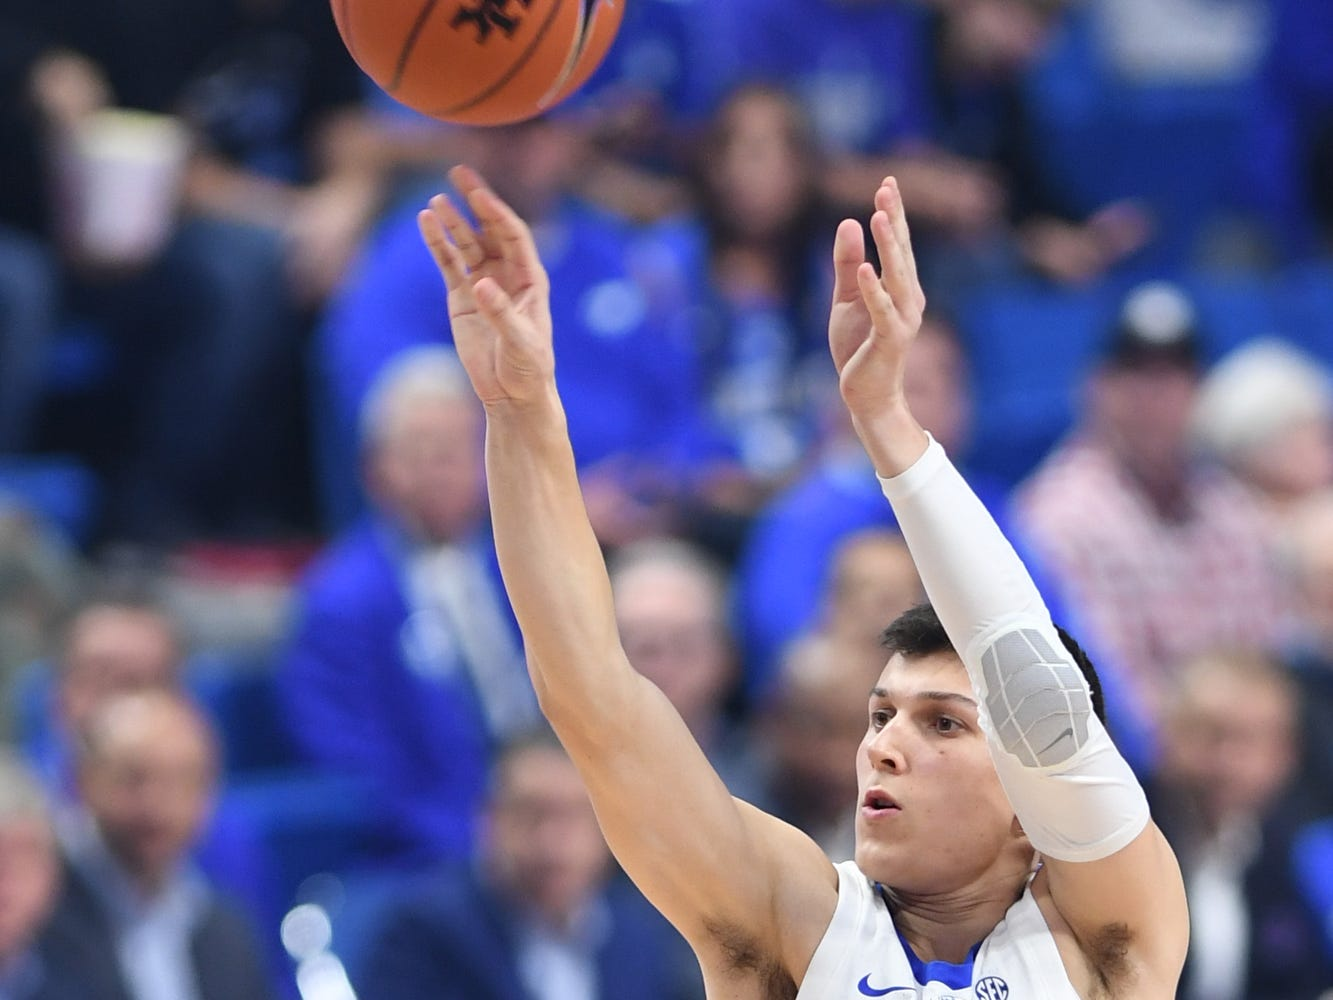 Tyler Herro shoots a 3-pointer during the University of Kentucky basketball game against Indiana University of Pennsylvania at Rupp Arena on Friday, Nov. 2, 2018.